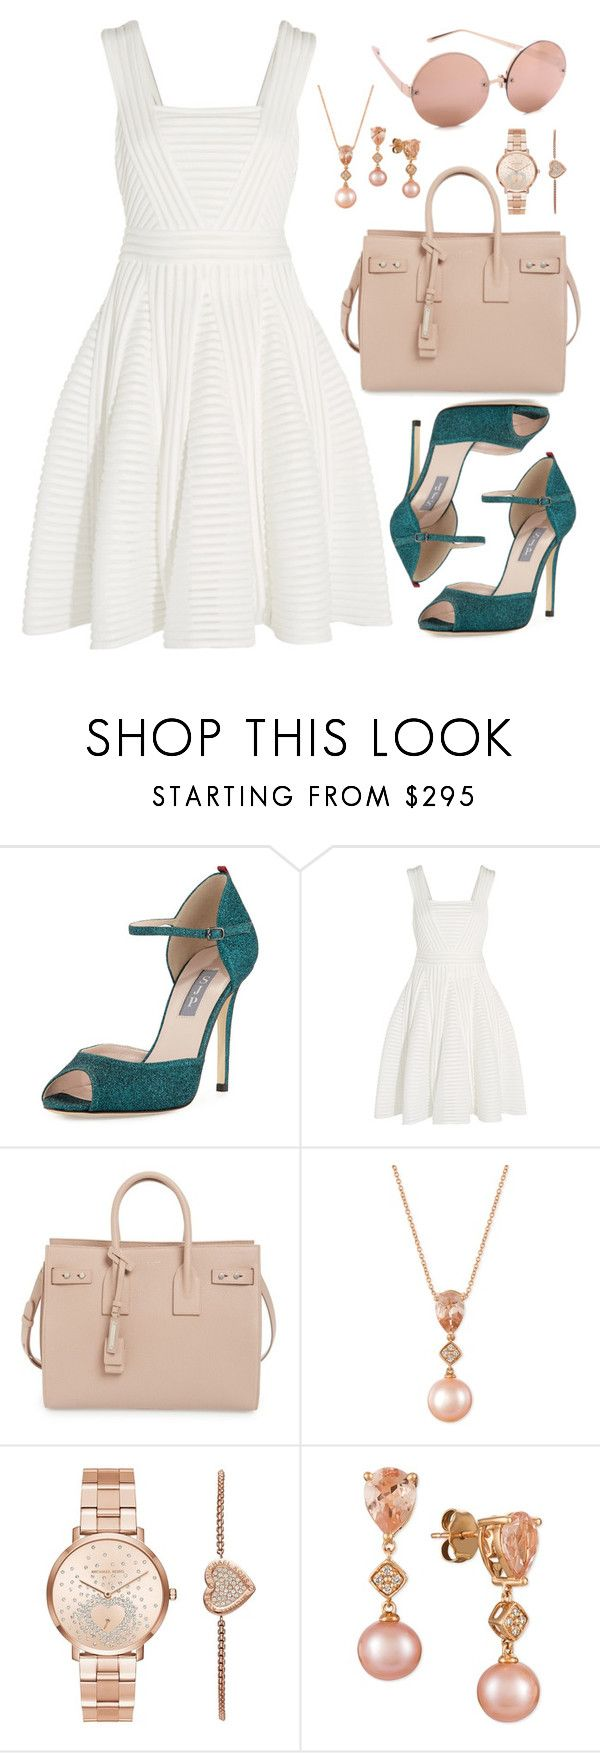 """""""Untitled #1020"""" by alissar13 ❤ liked on Polyvore featuring SJP, Maje, Yves Saint Laurent, LE VIAN, Michael Kors and Linda Farrow"""